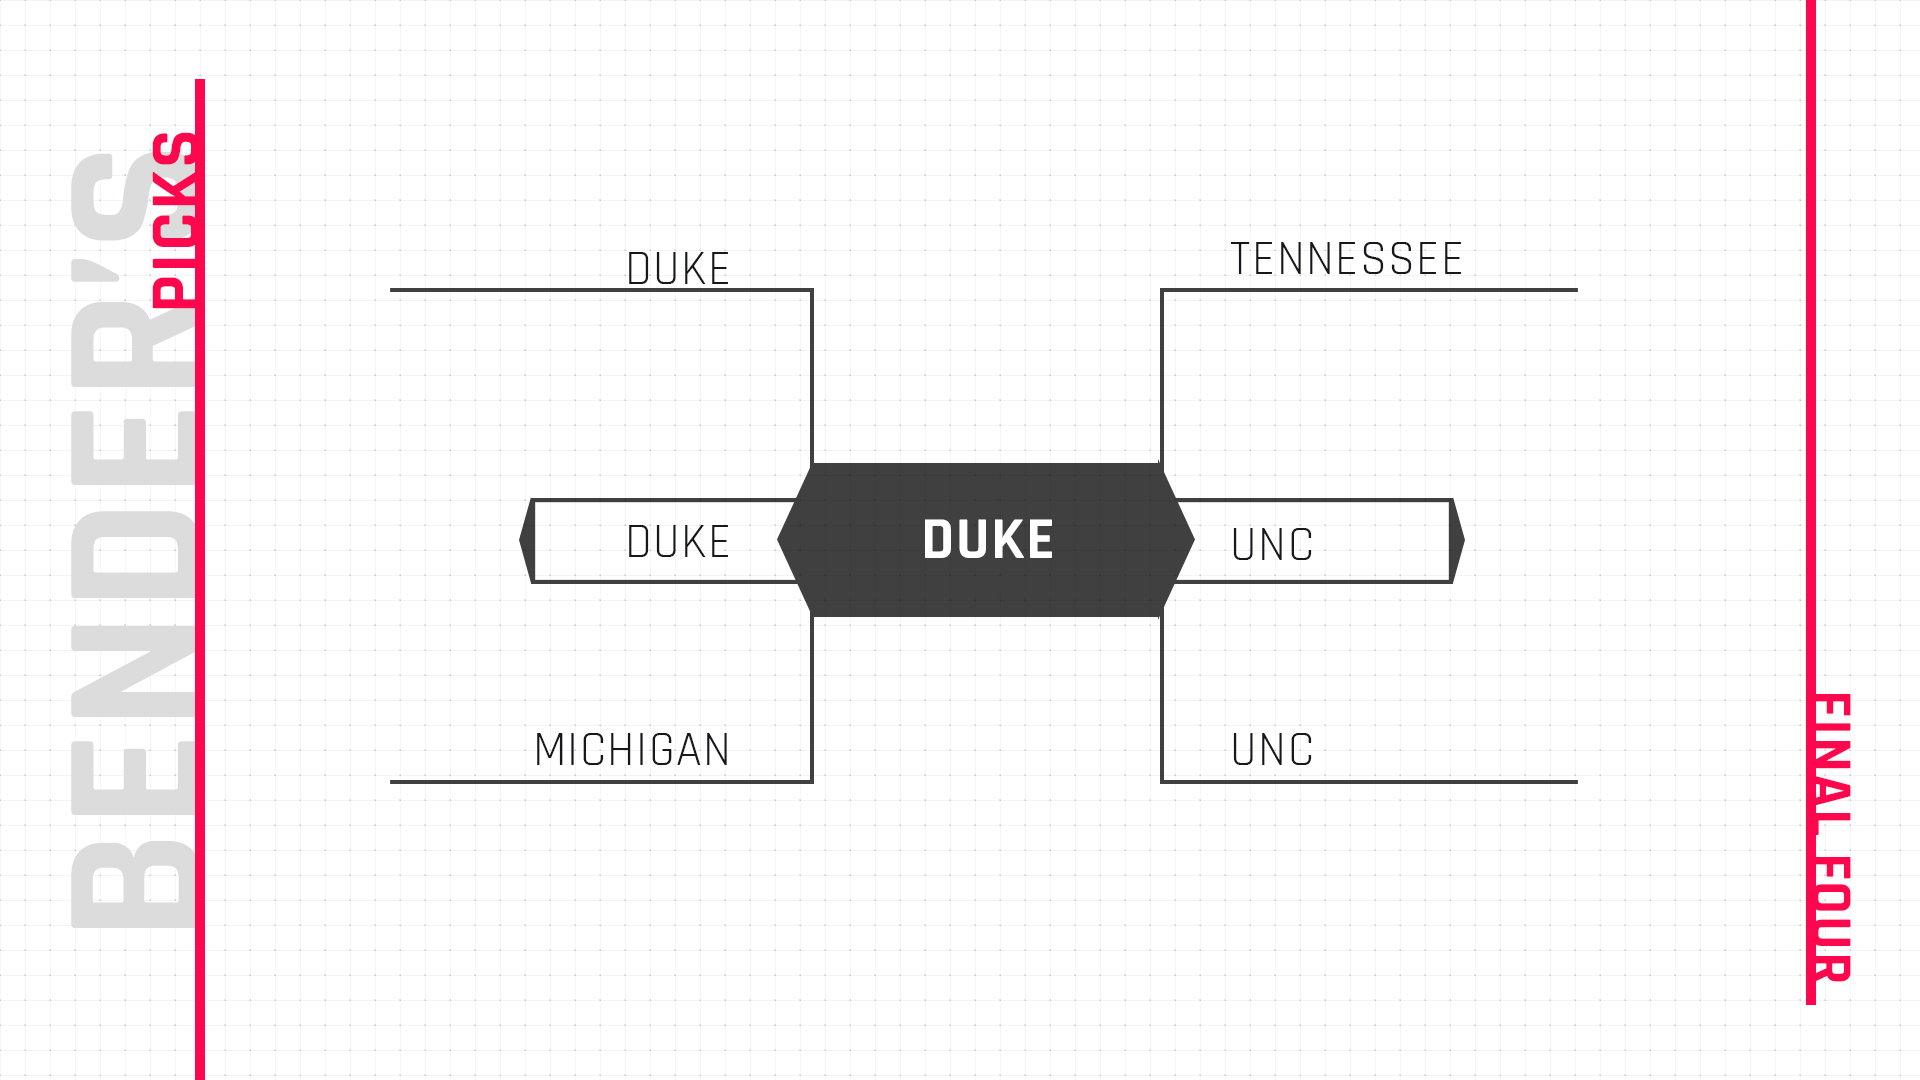 March Madness Odds